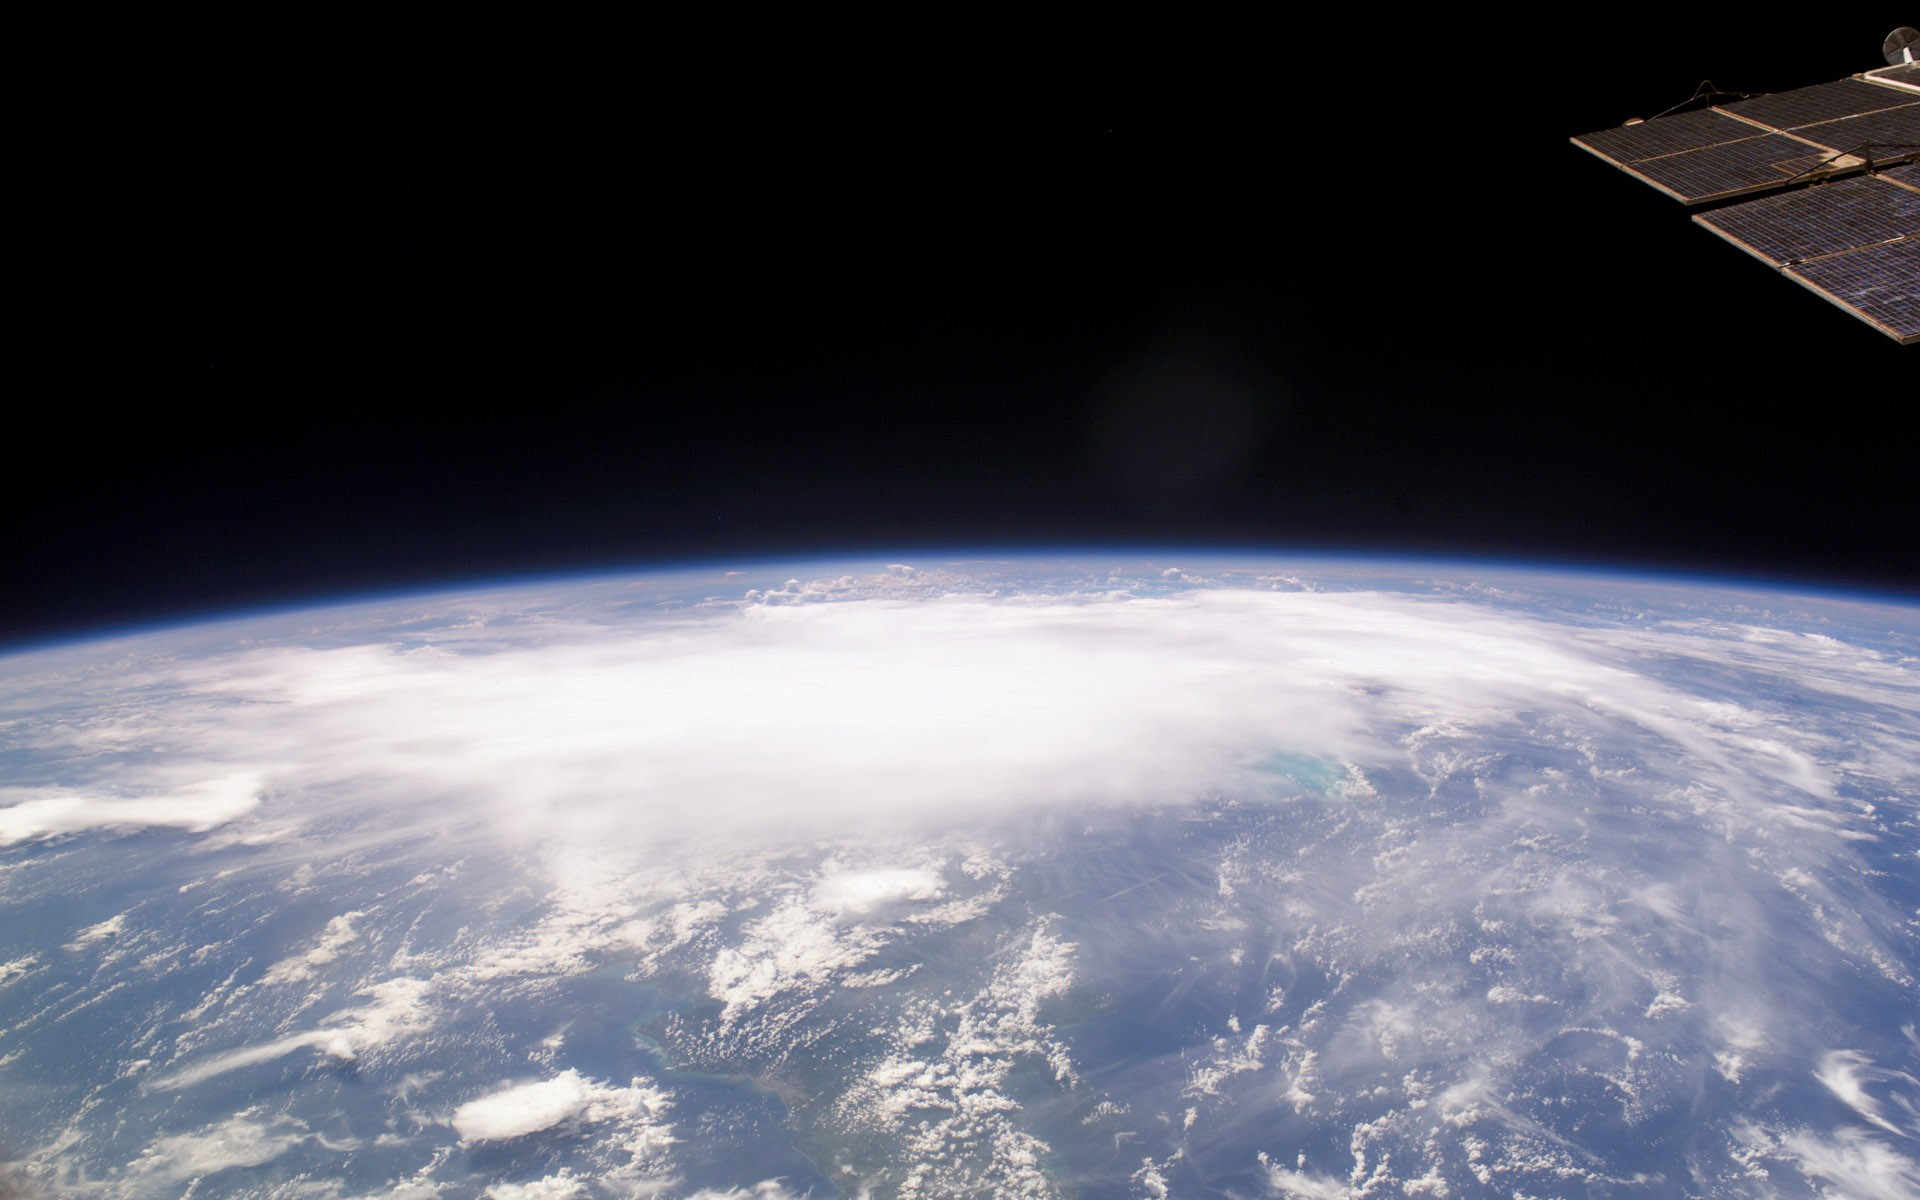 Outer space earth nasa wallpaper 1920x1200 199600 - Nasa space wallpaper 1920x1080 ...